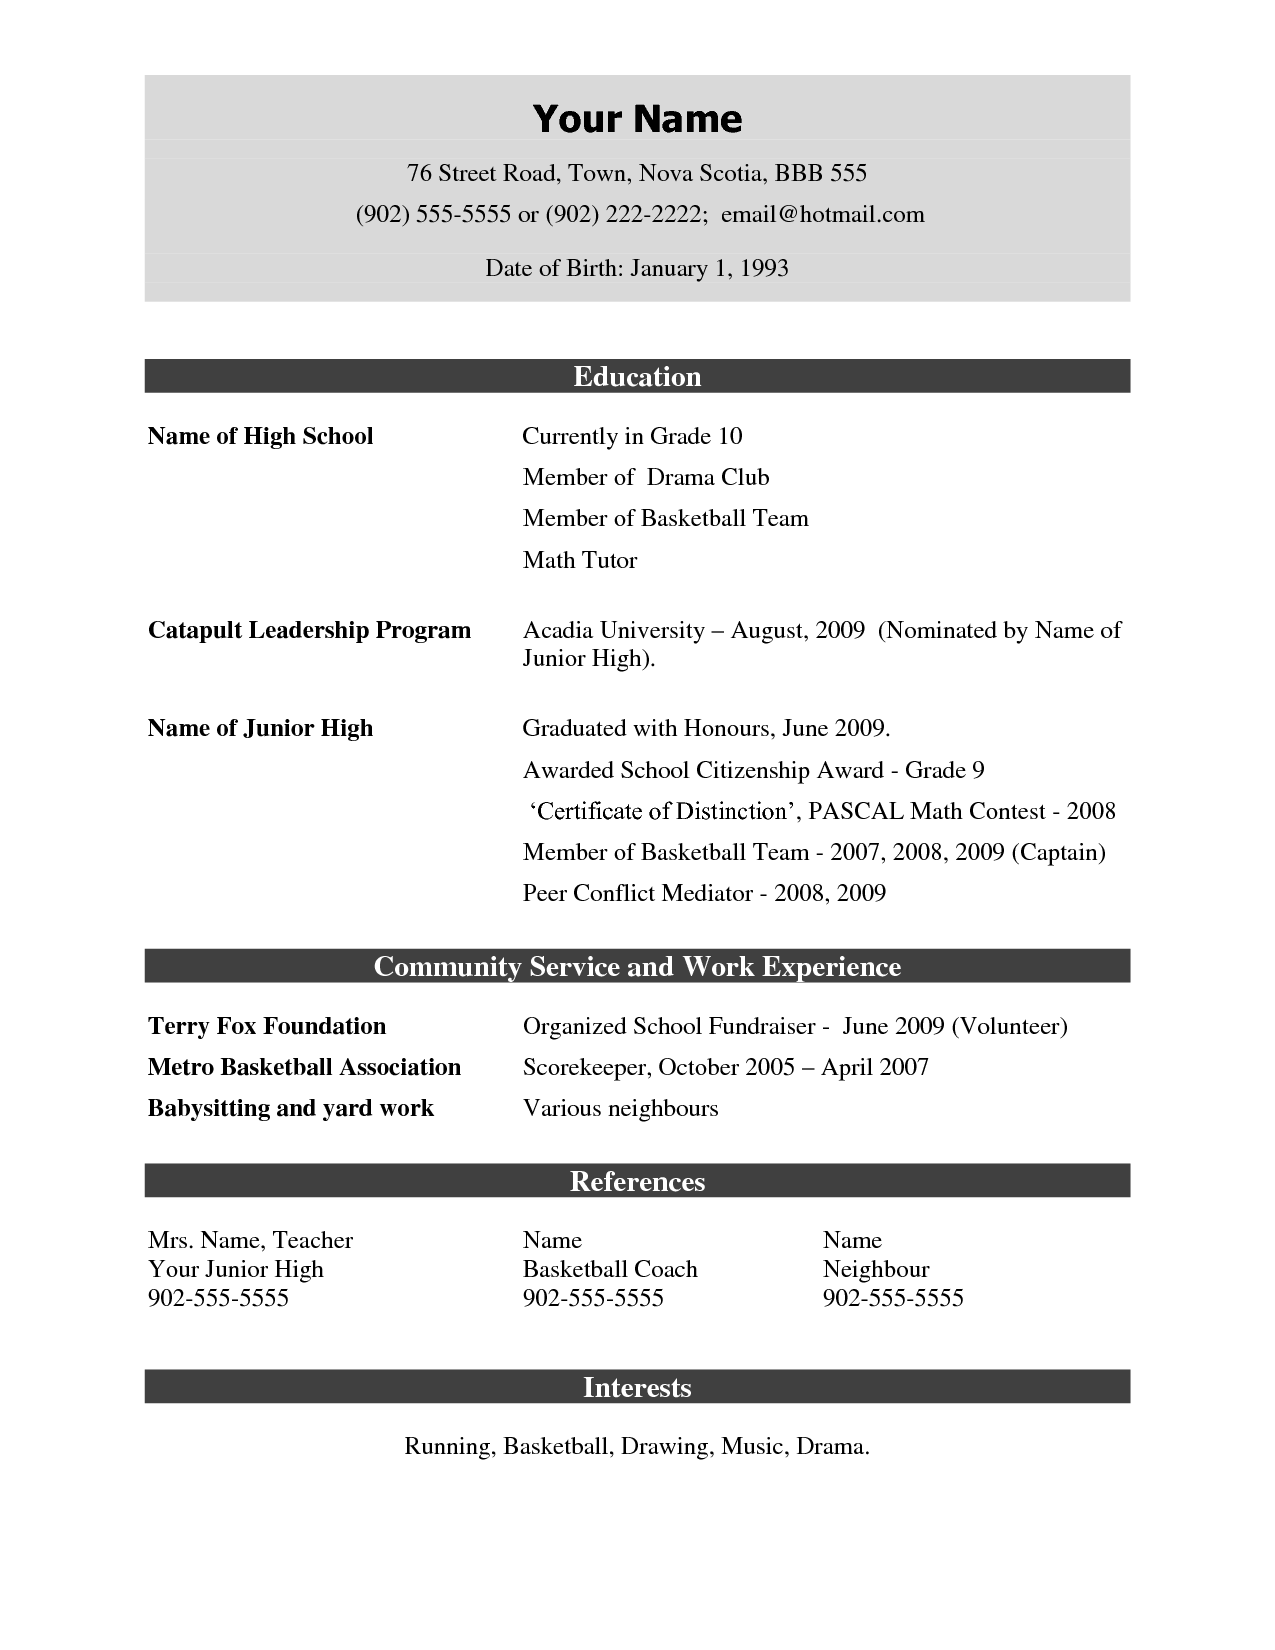 sample resume format doc download Kleo.beachfix.co